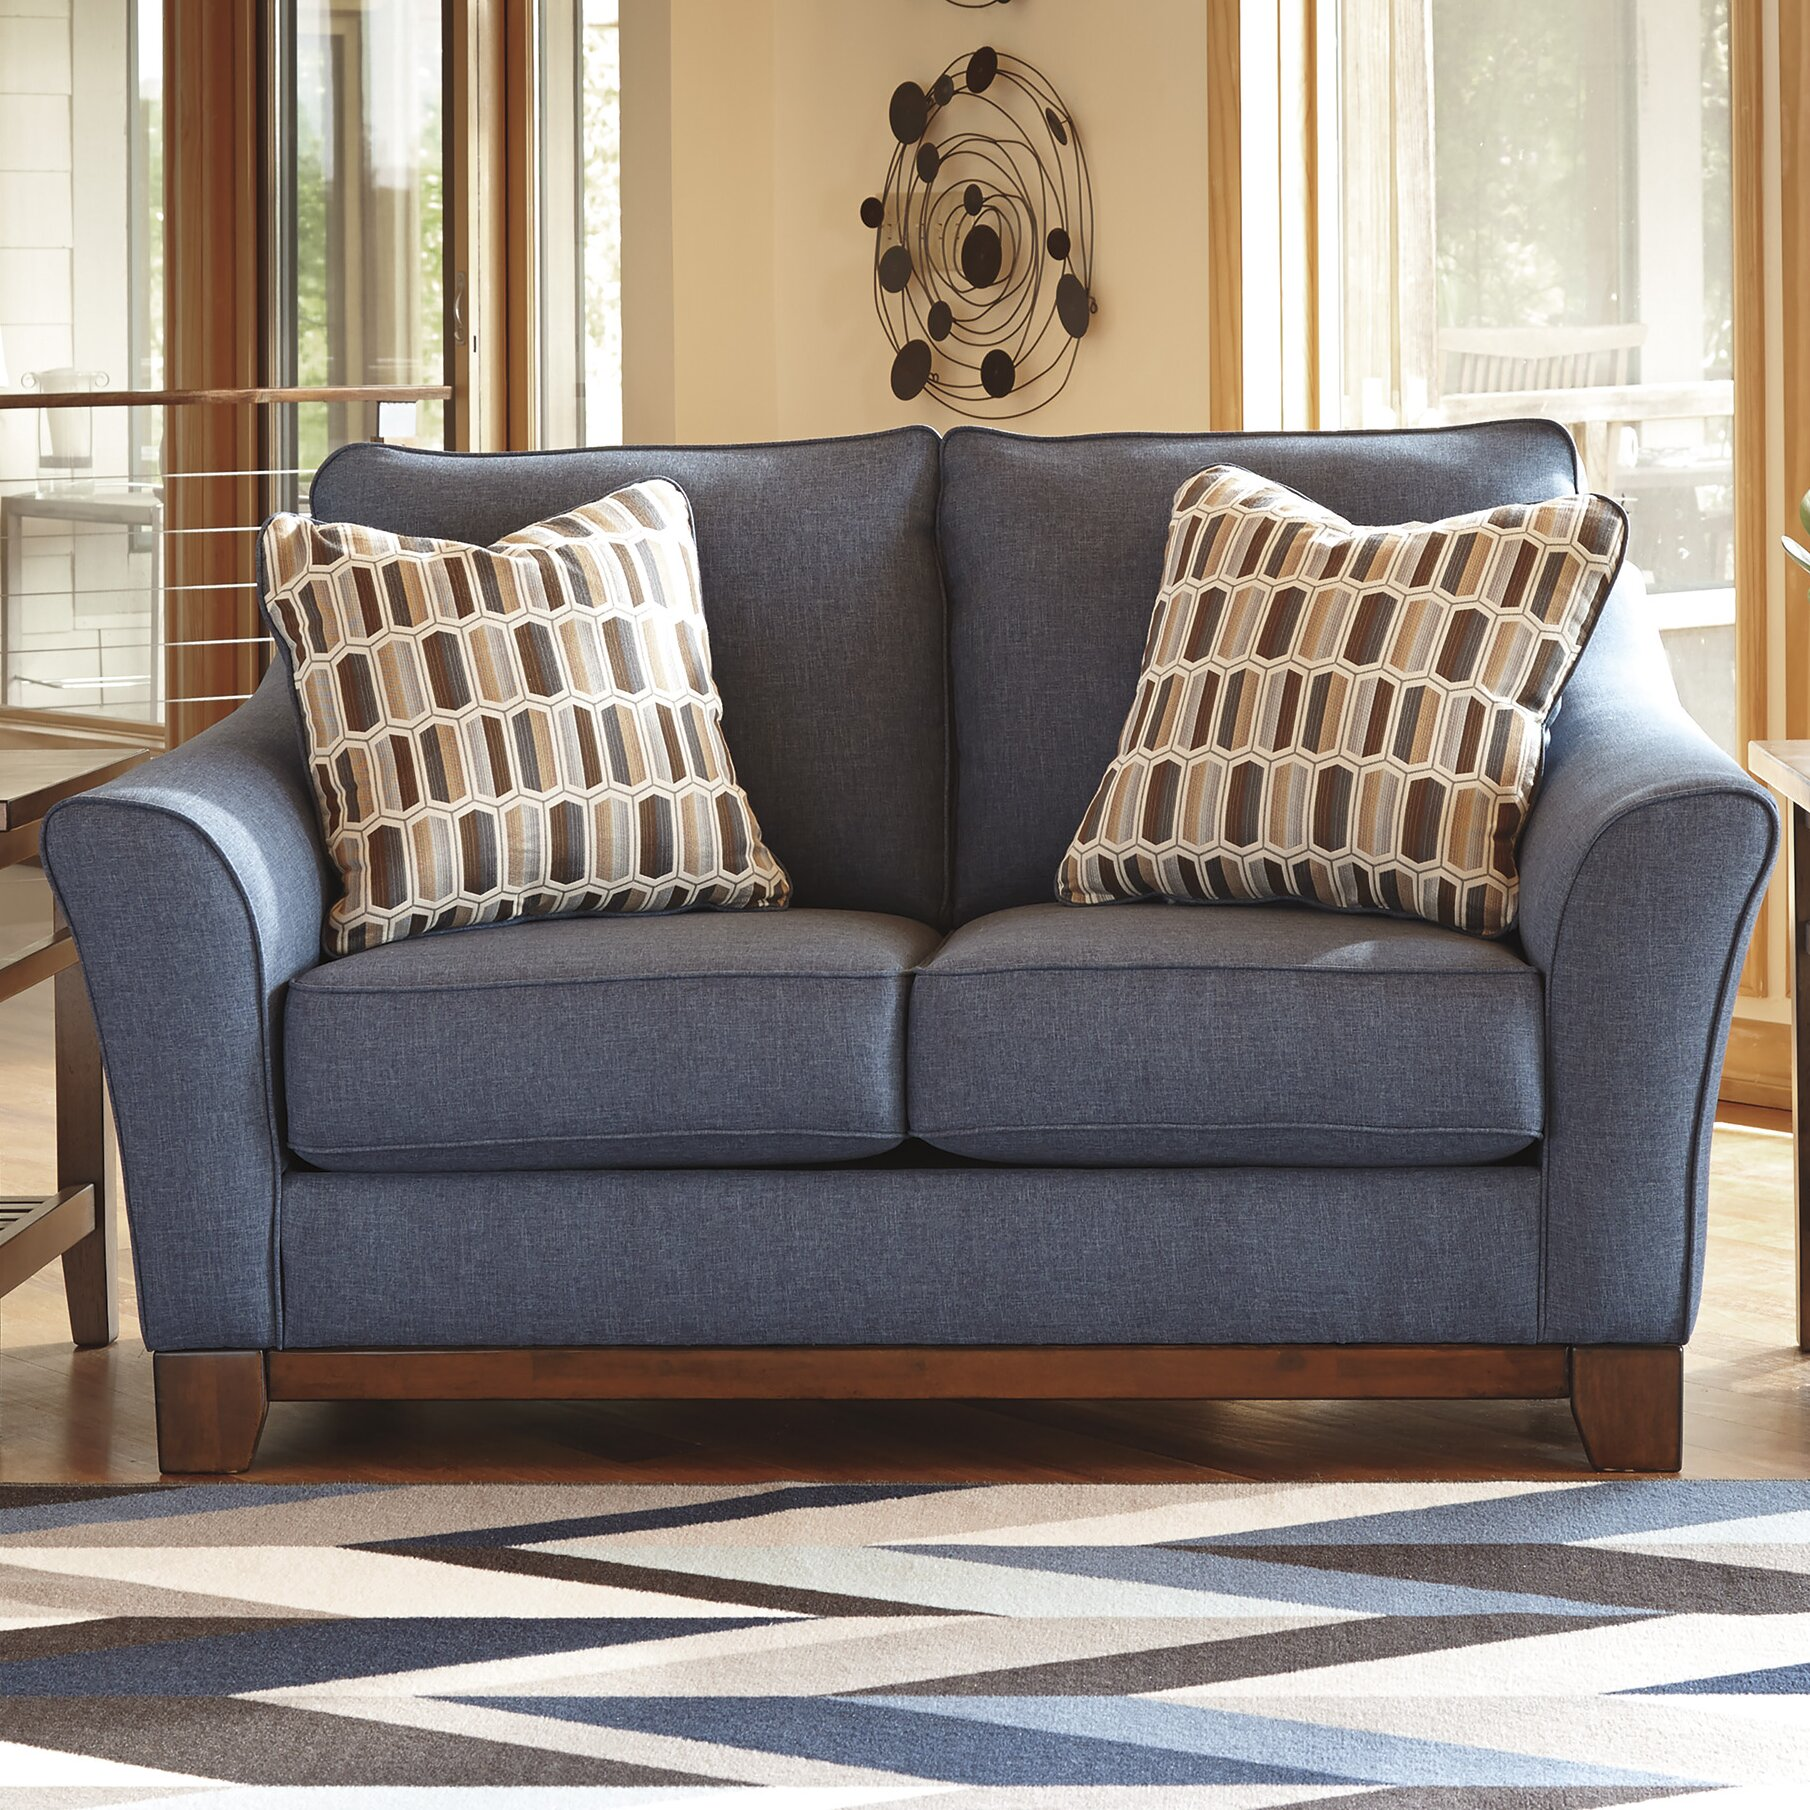 Janley denim sofa loveseat 43807 furniture janley livingroom set in denim Denim loveseat